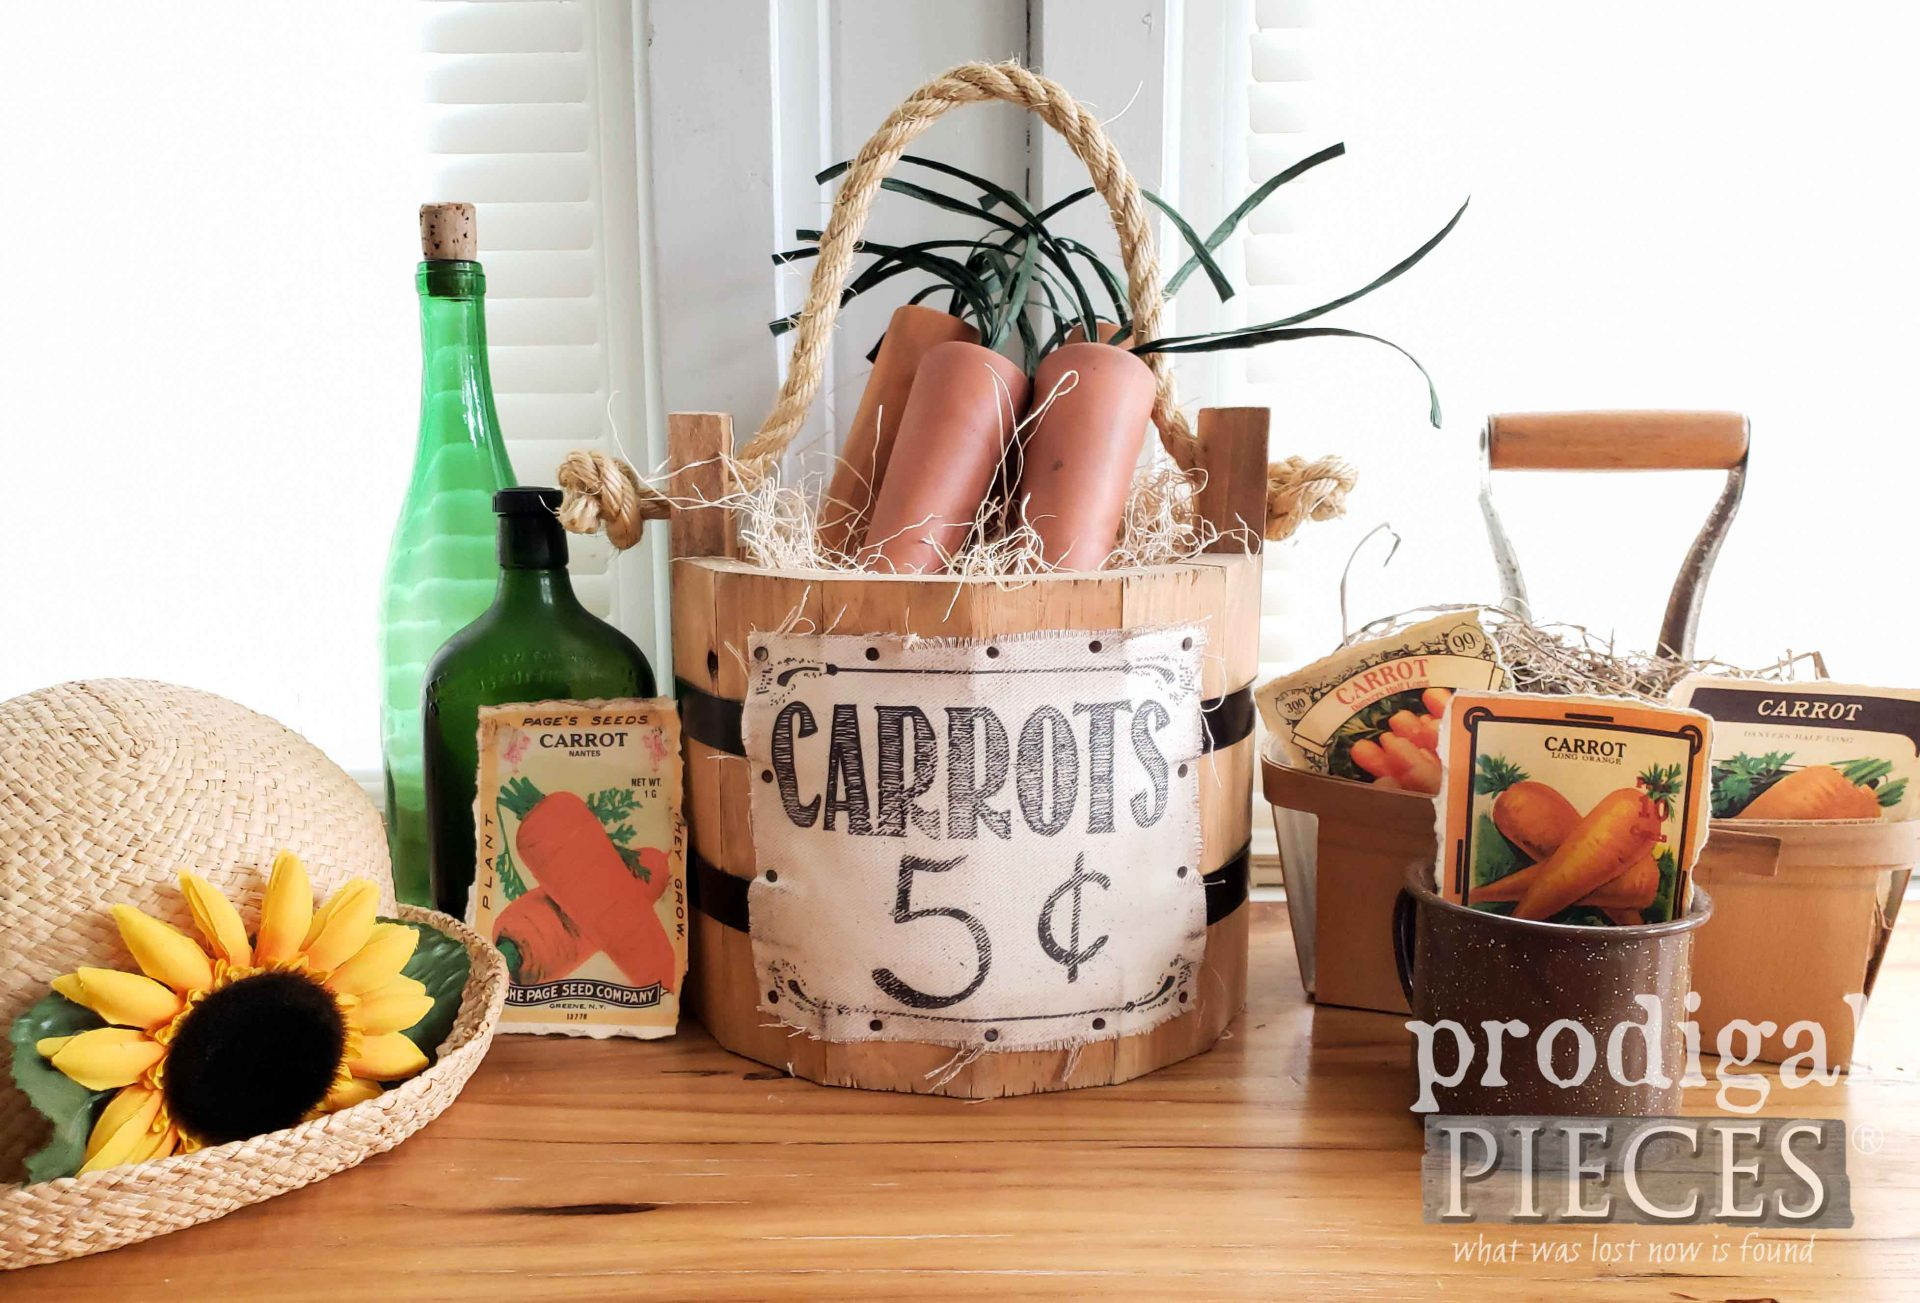 Farmhouse Style Spring Carrots Made from Upcycled Furniture Legs by Larissa of Prodigal Pieces | prodigalpieces.com #prodigalpieces #farmhouse #diy #upcycled #home #crafts #homedecor